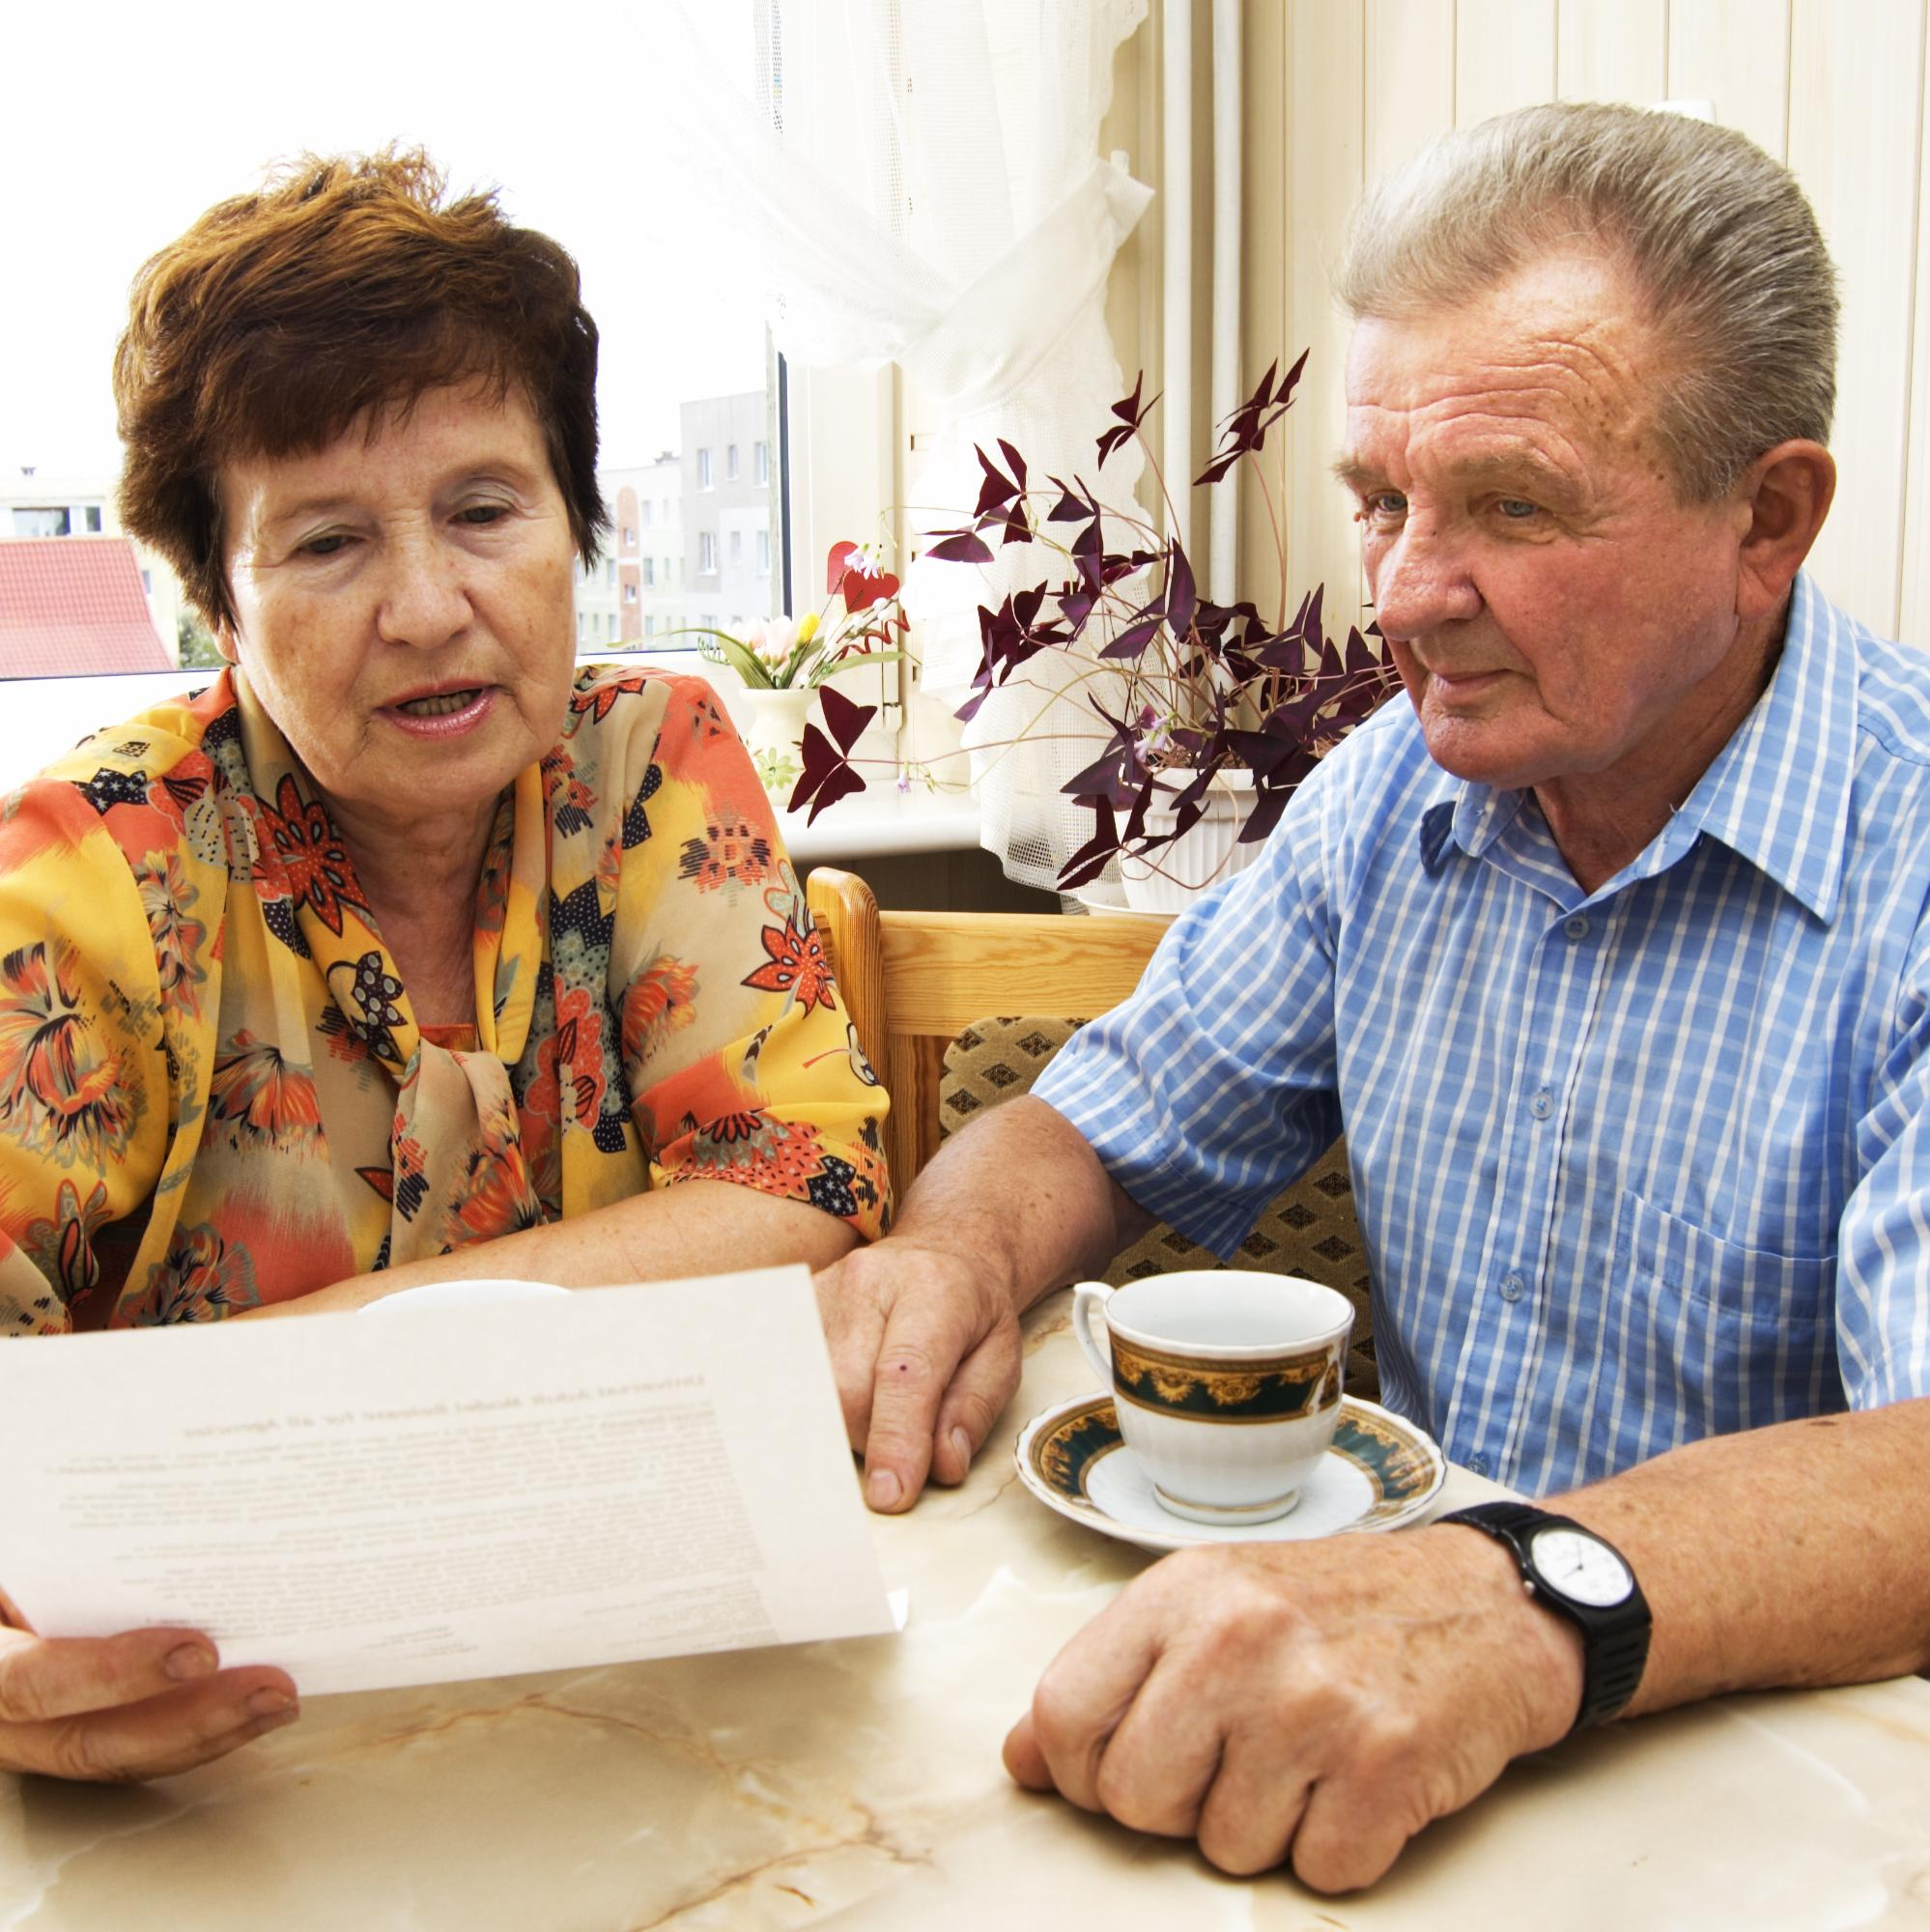 A retired couple looking over paperwork at a table.